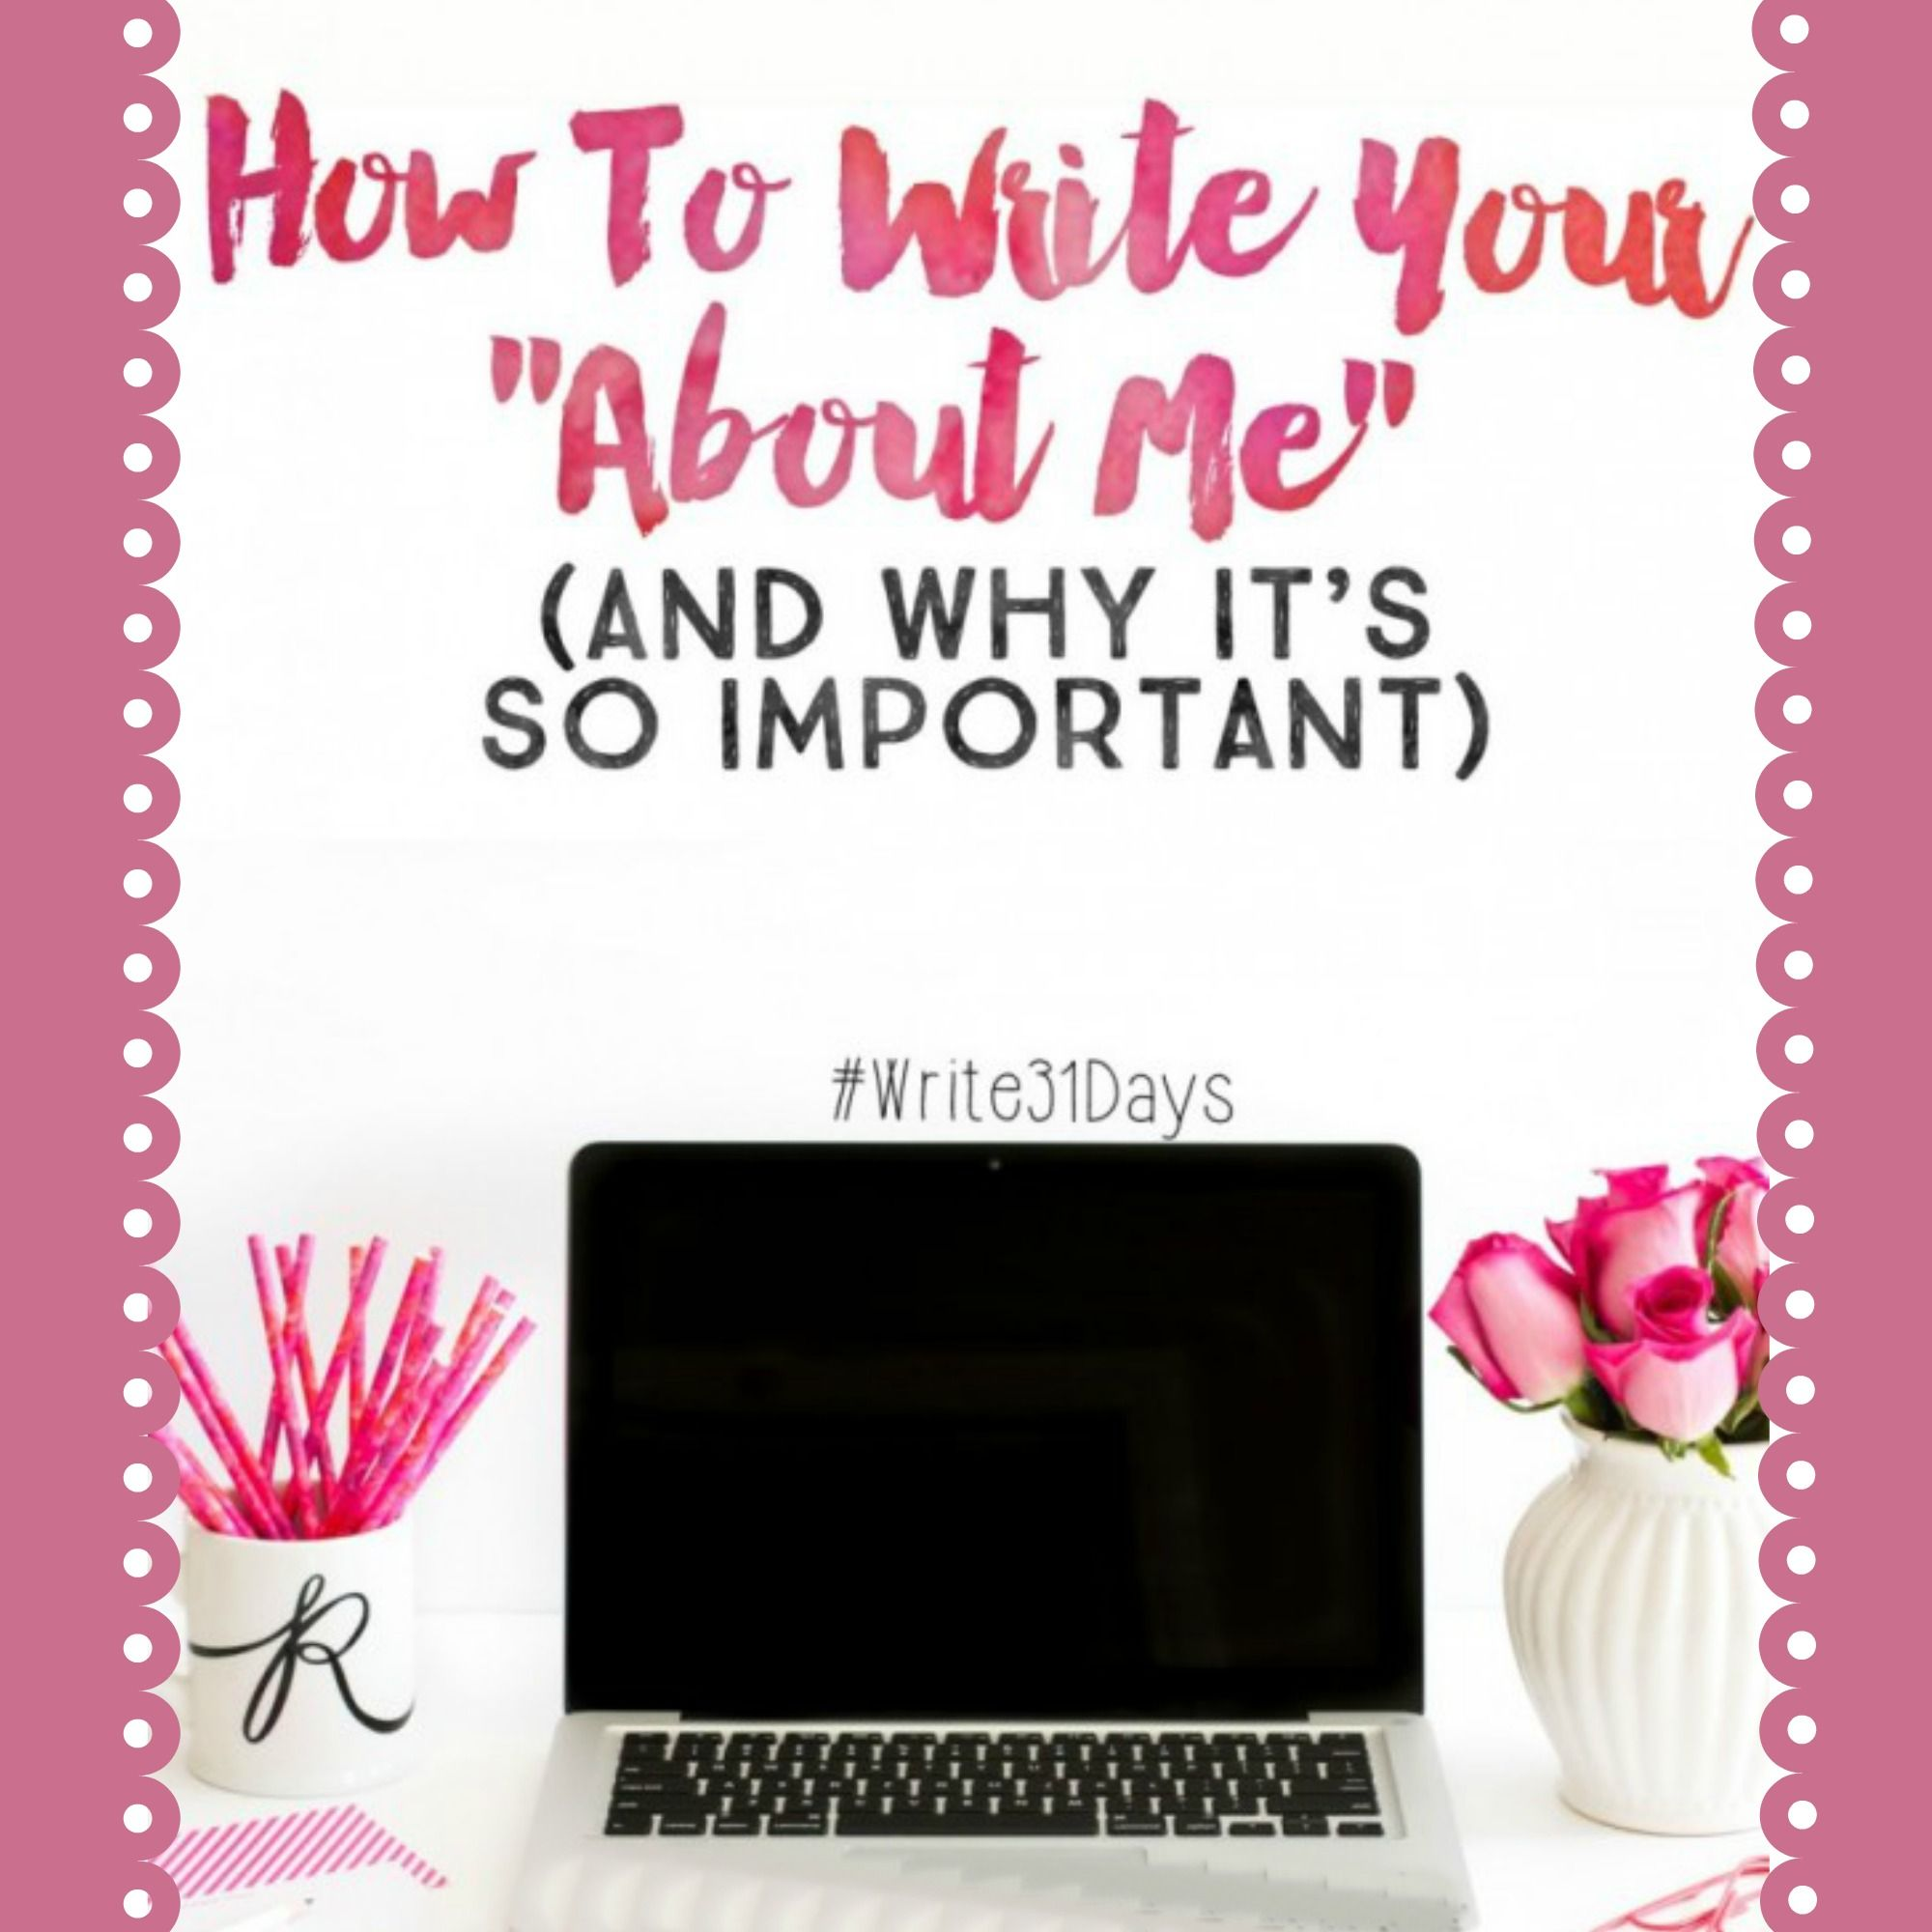 """How to Write Your """"About Me"""" (And Why It's So Important) - http://www.thesitsgirls.com/blogging/how-to-write-your-about-me-and-why-its-so-important/"""